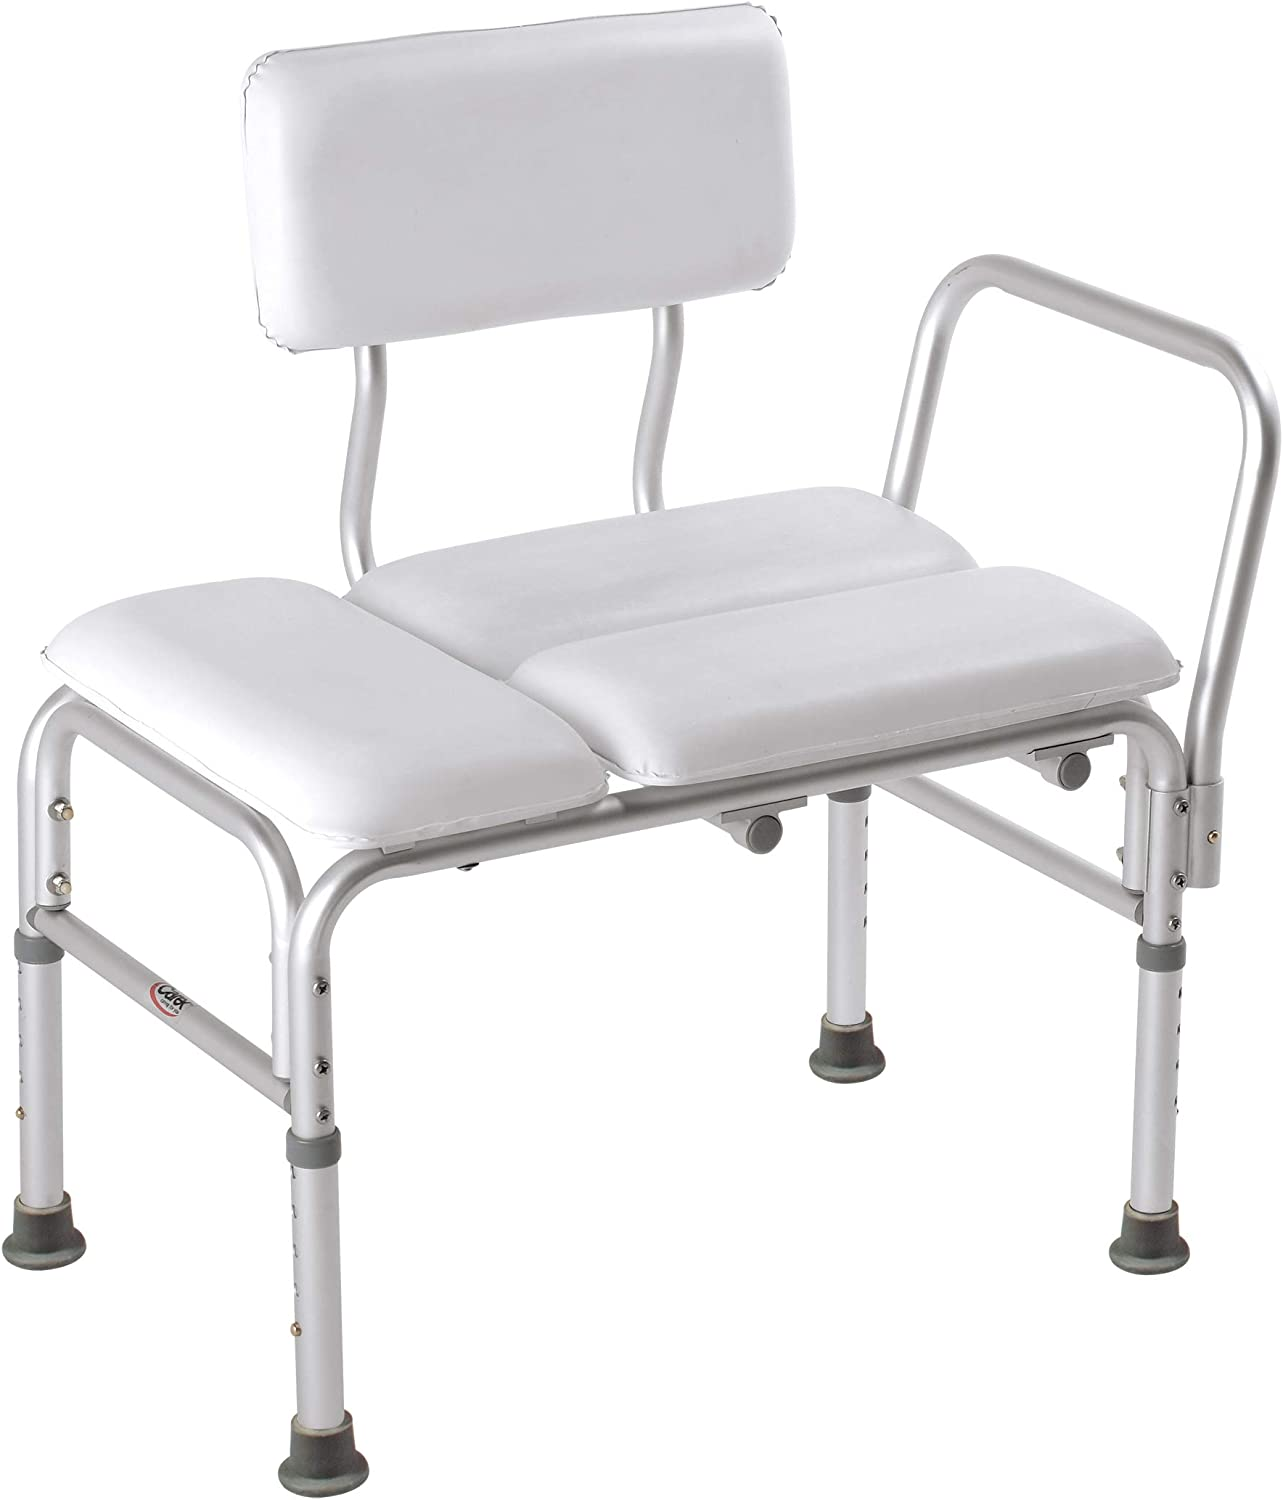 Carex Deluxe Padded Tub Transfer Bench - Shower Bench with Height Adjustable Legs - Convertible to Right or Left Hand Entry 71WdYK4yPcLSL1500_